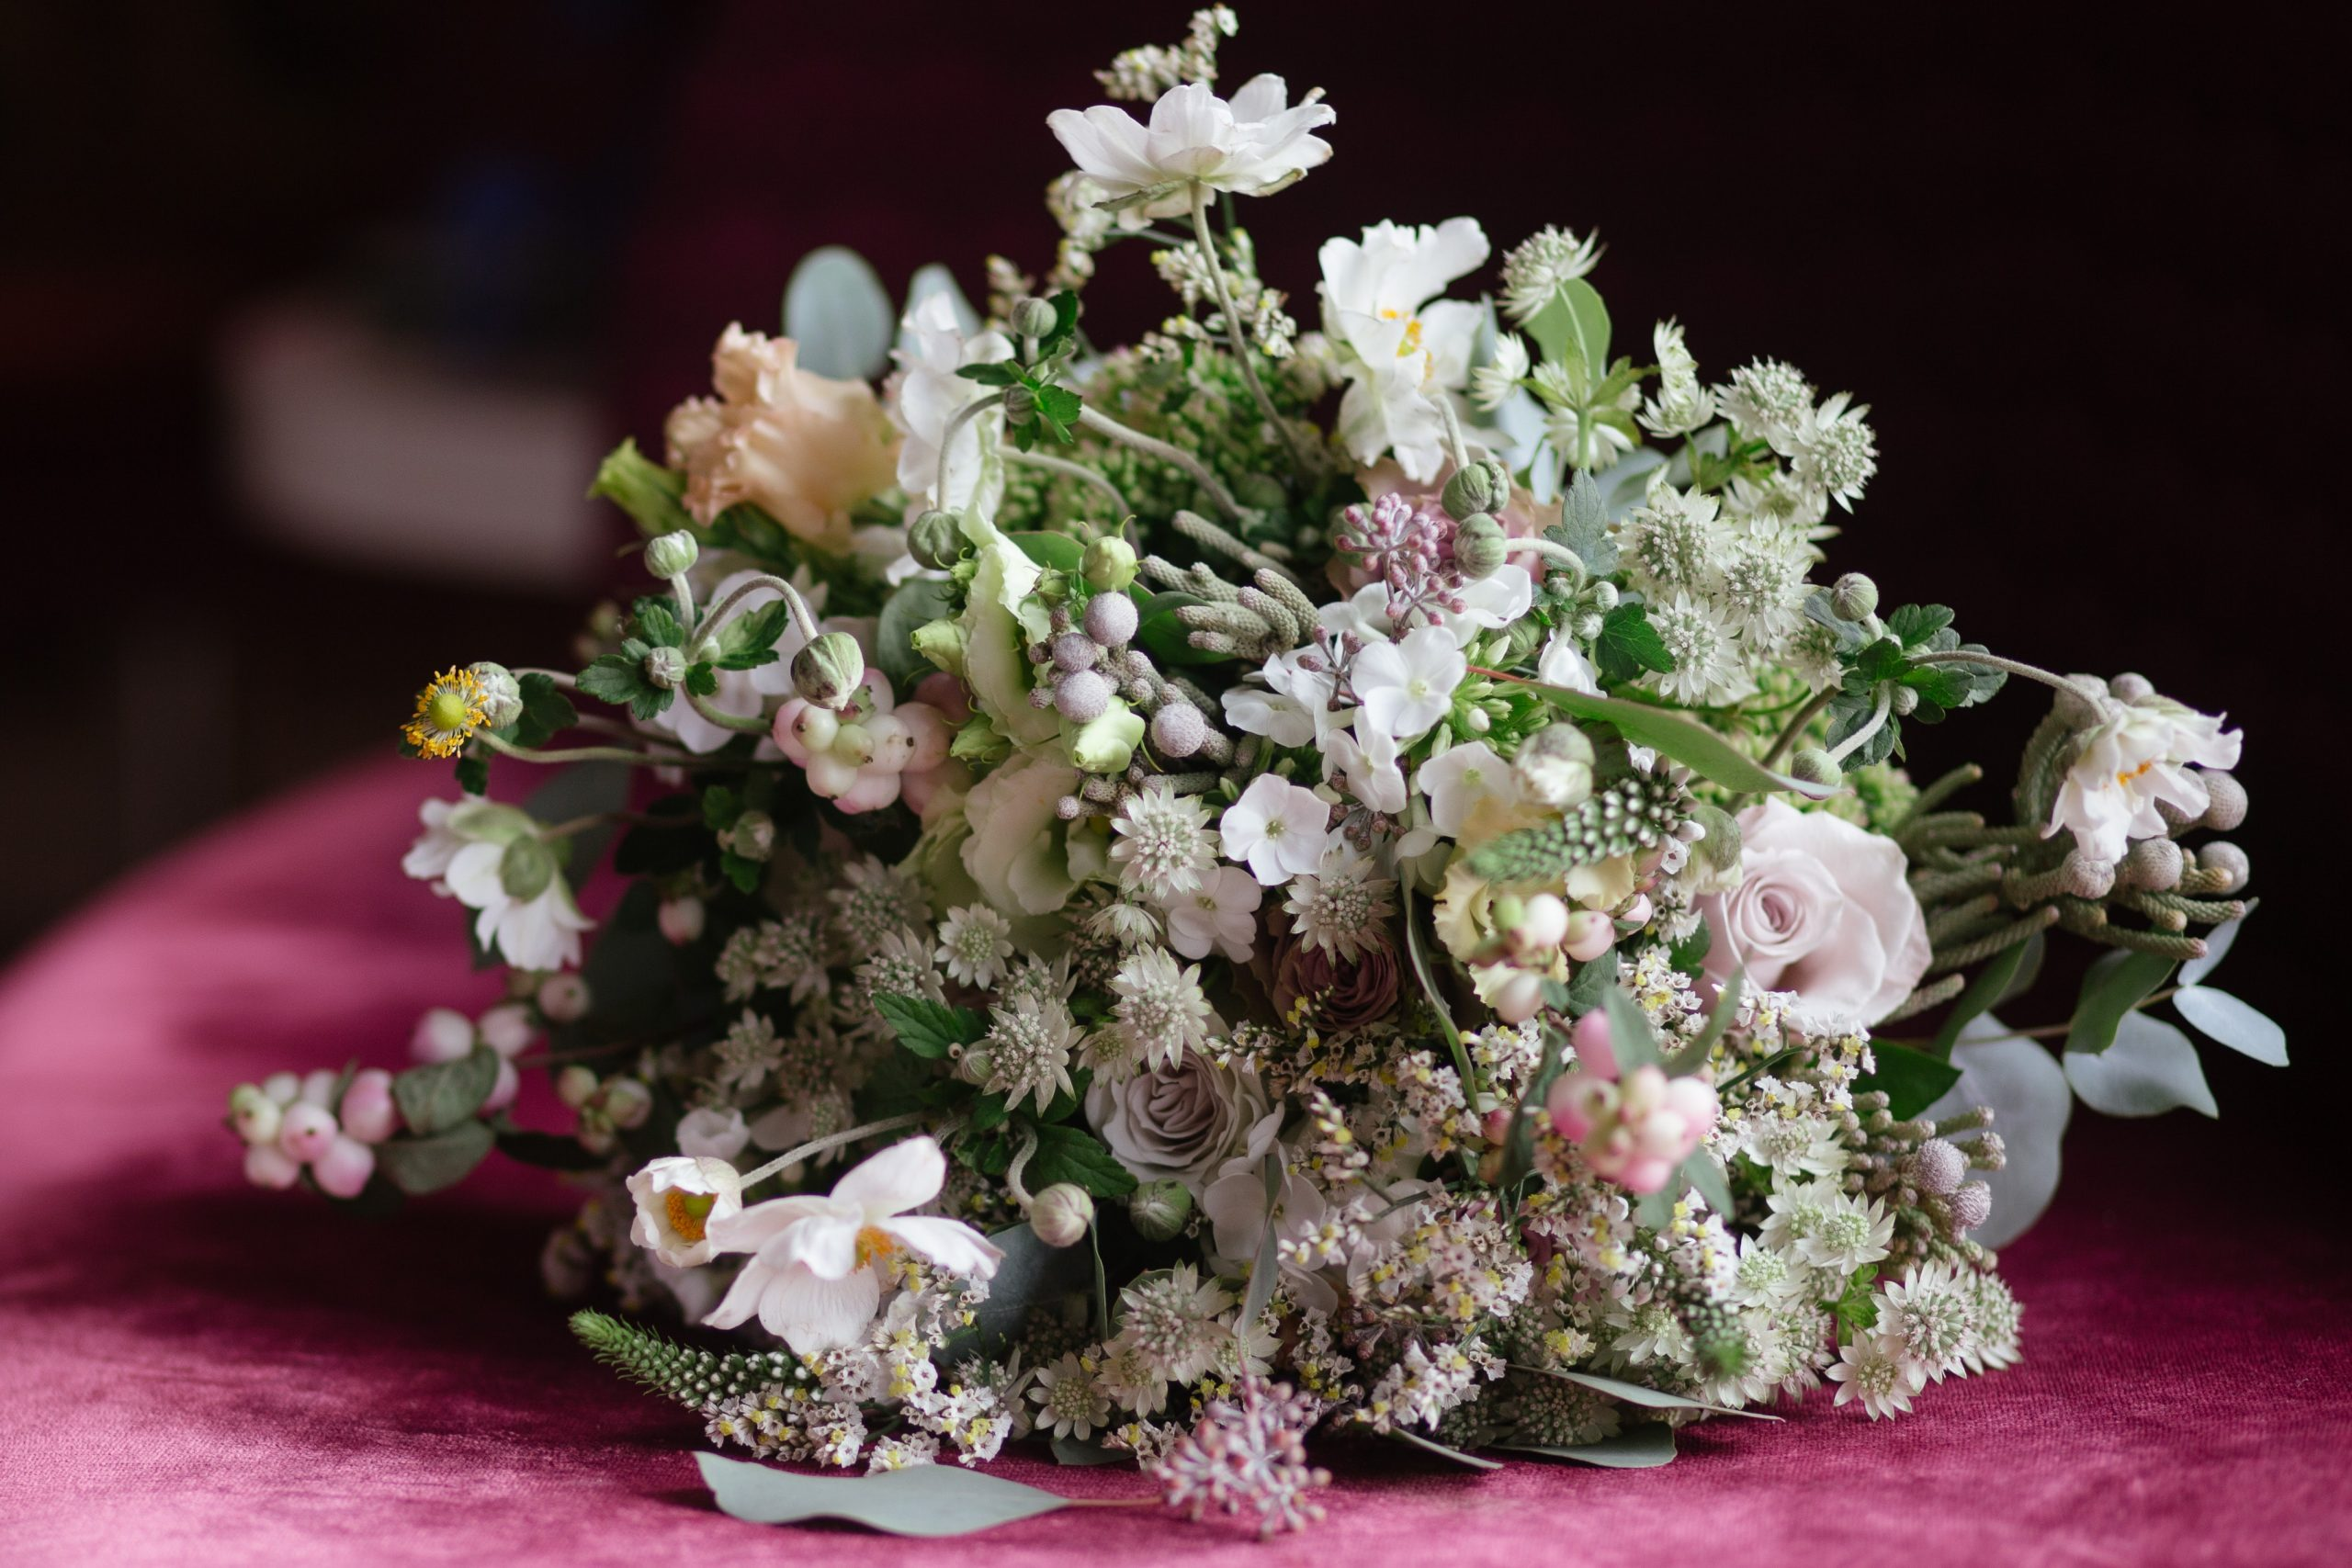 textured bridal bouquet with different tones of white